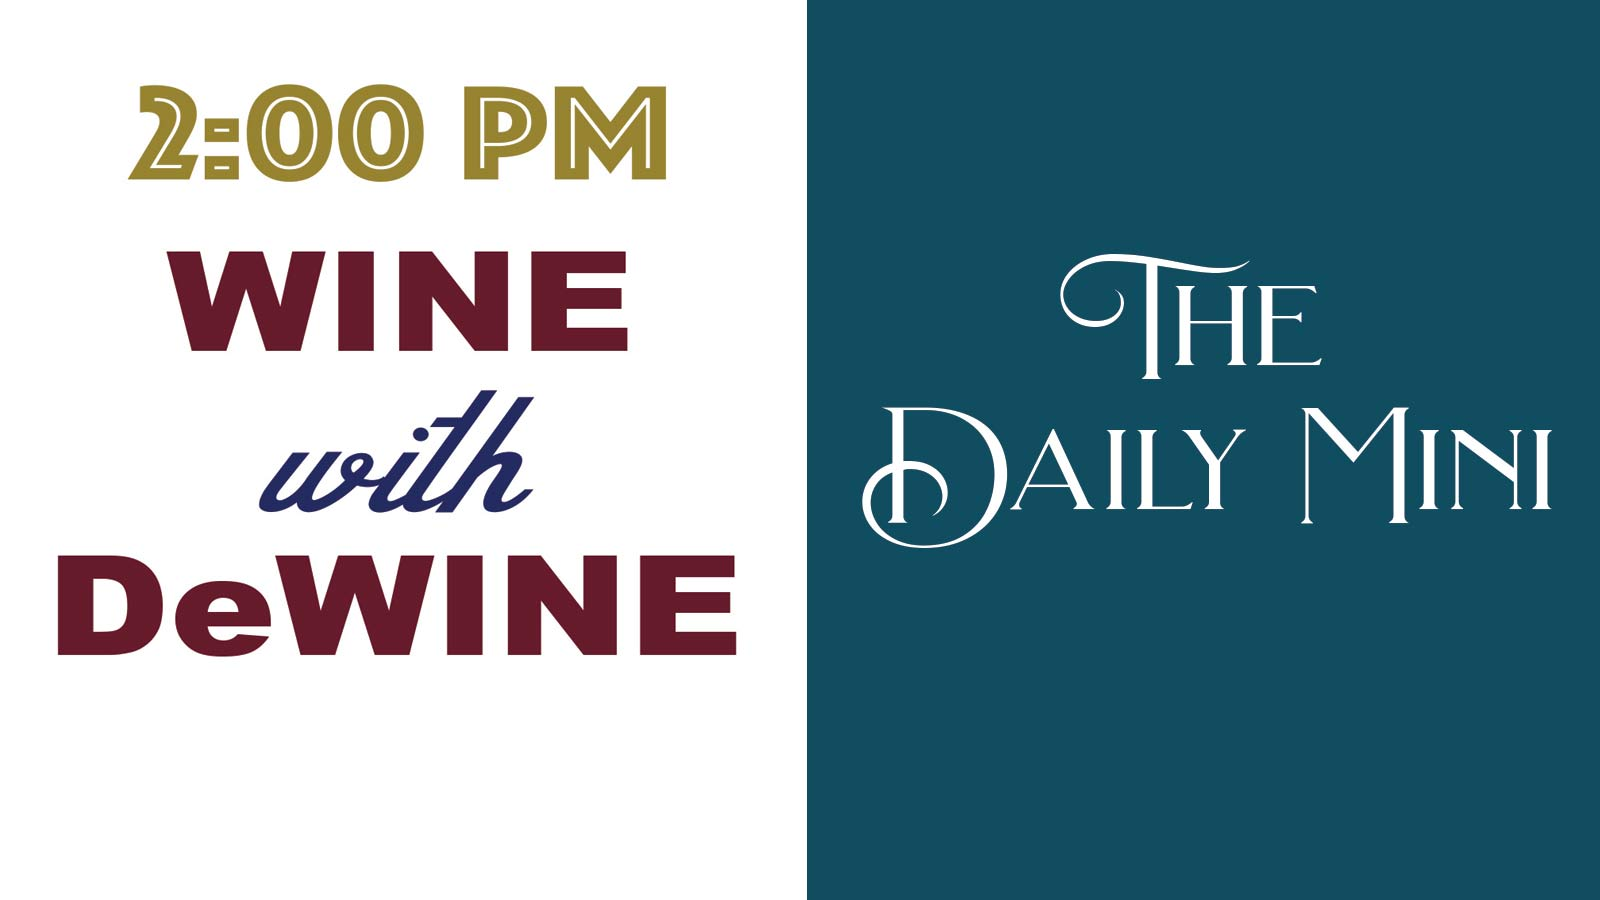 The Daily Mini announcement with words 2:00 PM Wine with DeWine.